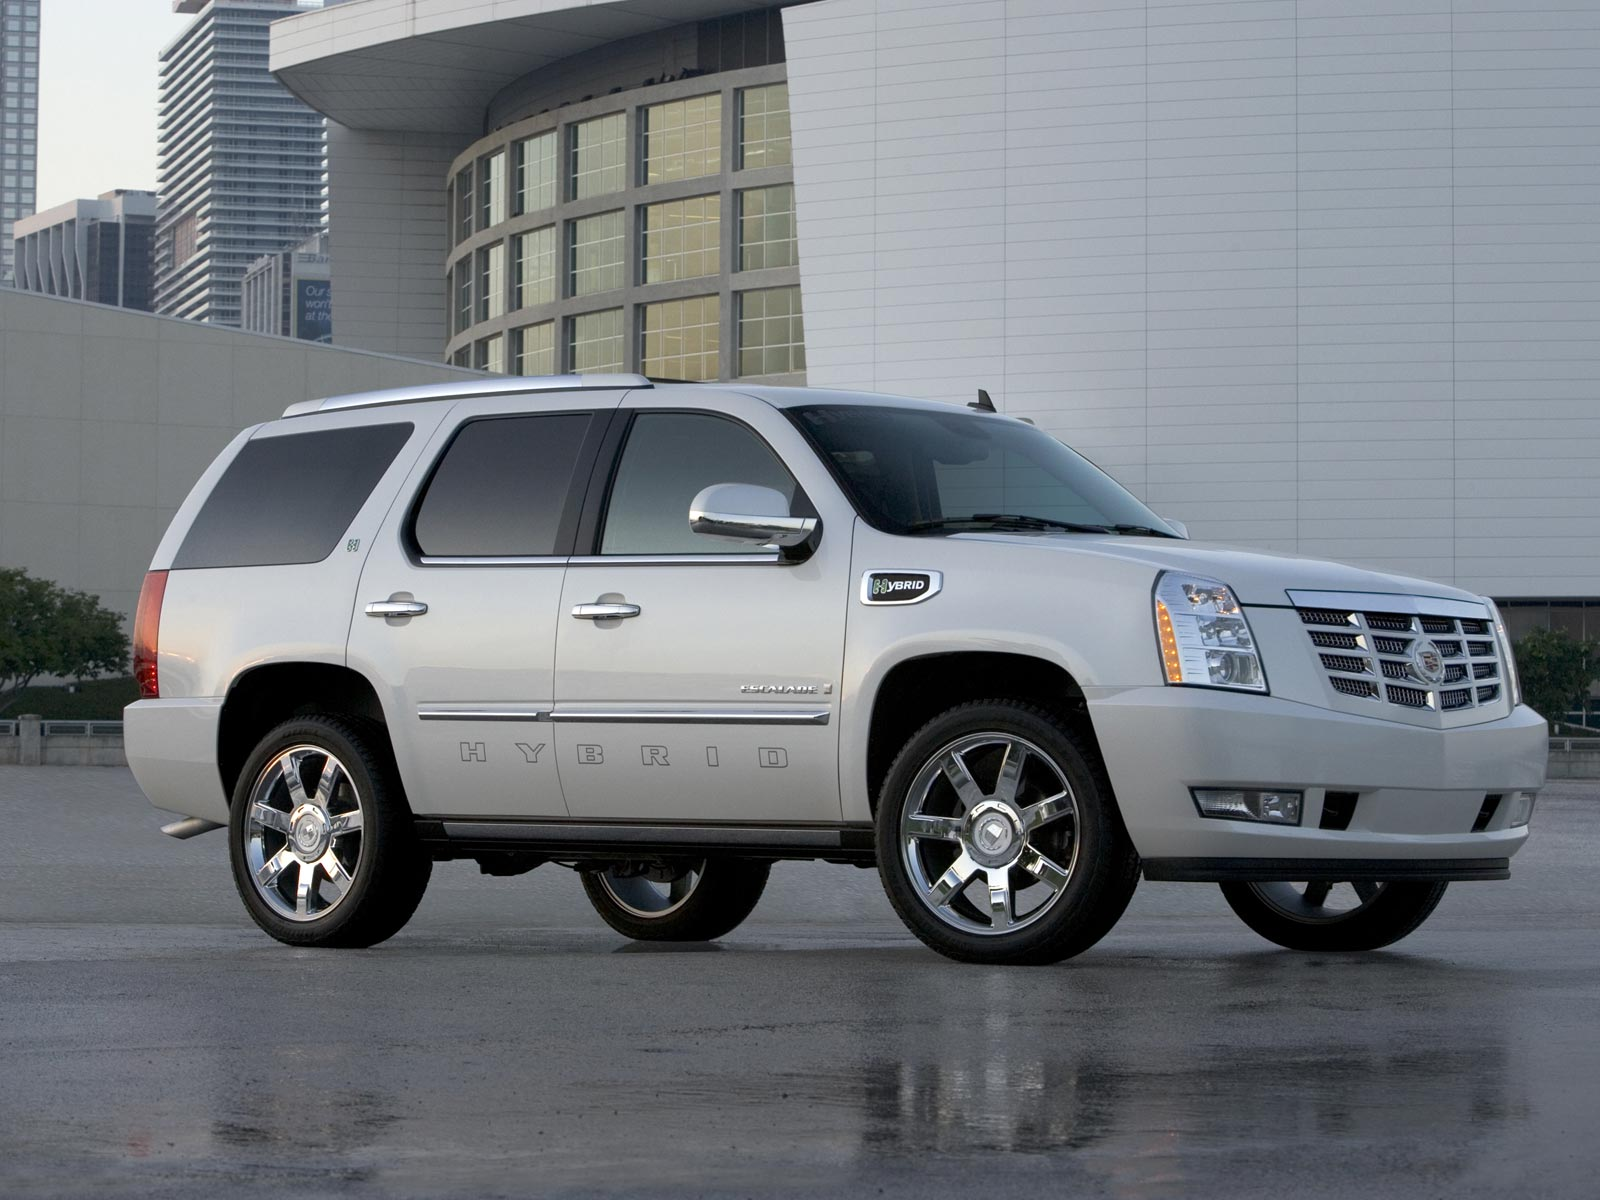 2019 Cadillac Escalade EXT photo - 6